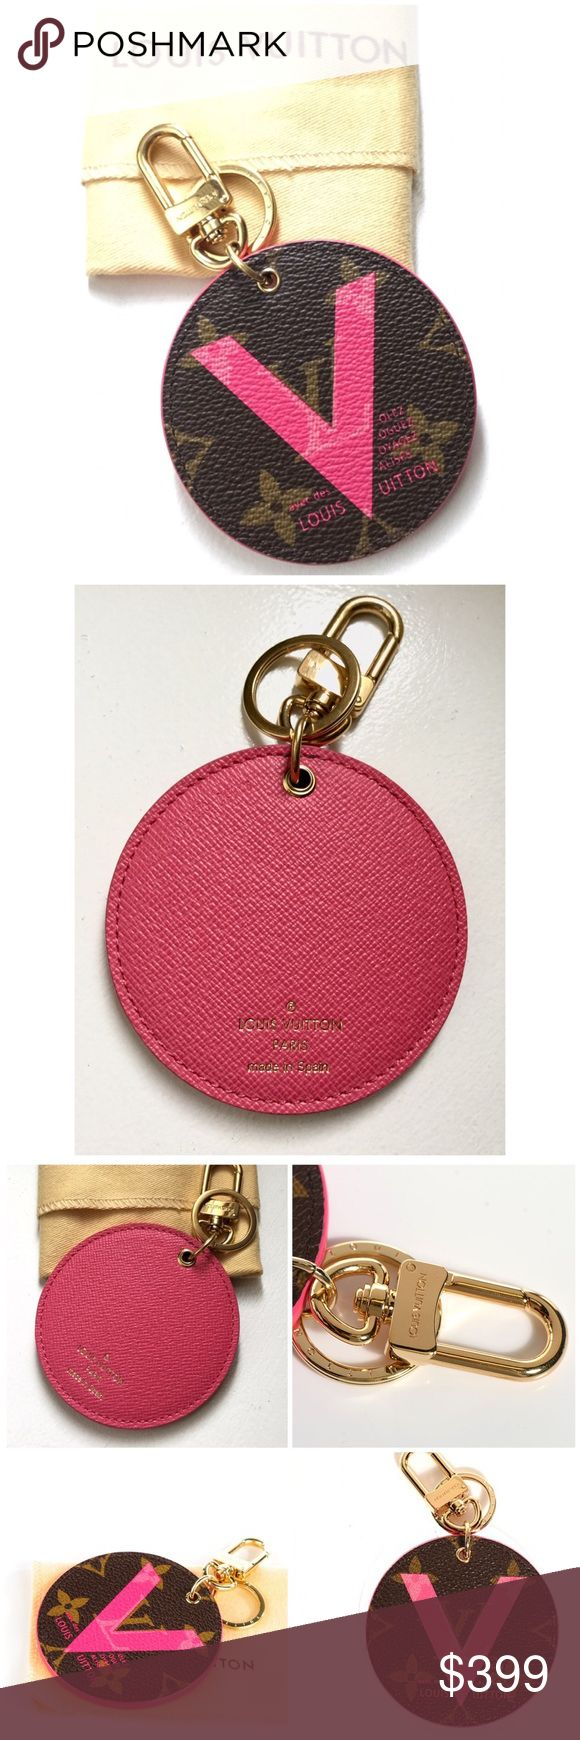 "LOUIS VUITTON Illustre V Bag Charm Grenade Authentic LOUIS VUITTON Monogram Illustre V Bag Charm Grenade.- limited edition - This key holder is a disk of Louis Vuitton monogram on toile canvas. The key ring has a bold pink V with the Louis Vuitton ""Articles de Voyage"" logo print -brass D-Ring clasp and a key ring for both Luxury and style! Length: 3"", Height: 3.25"", Drop: 1.75"" Comes With: dust bag - like new sold out ! Louis Vuitton Bags"